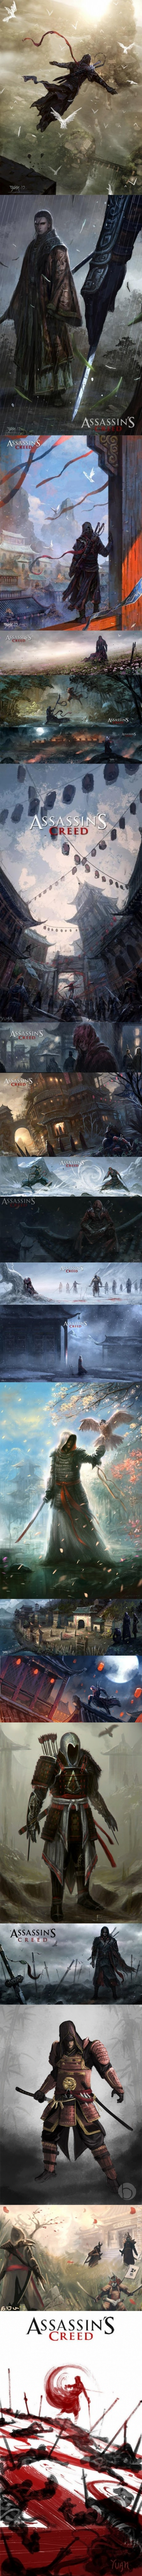 assassins-creed-fan-art